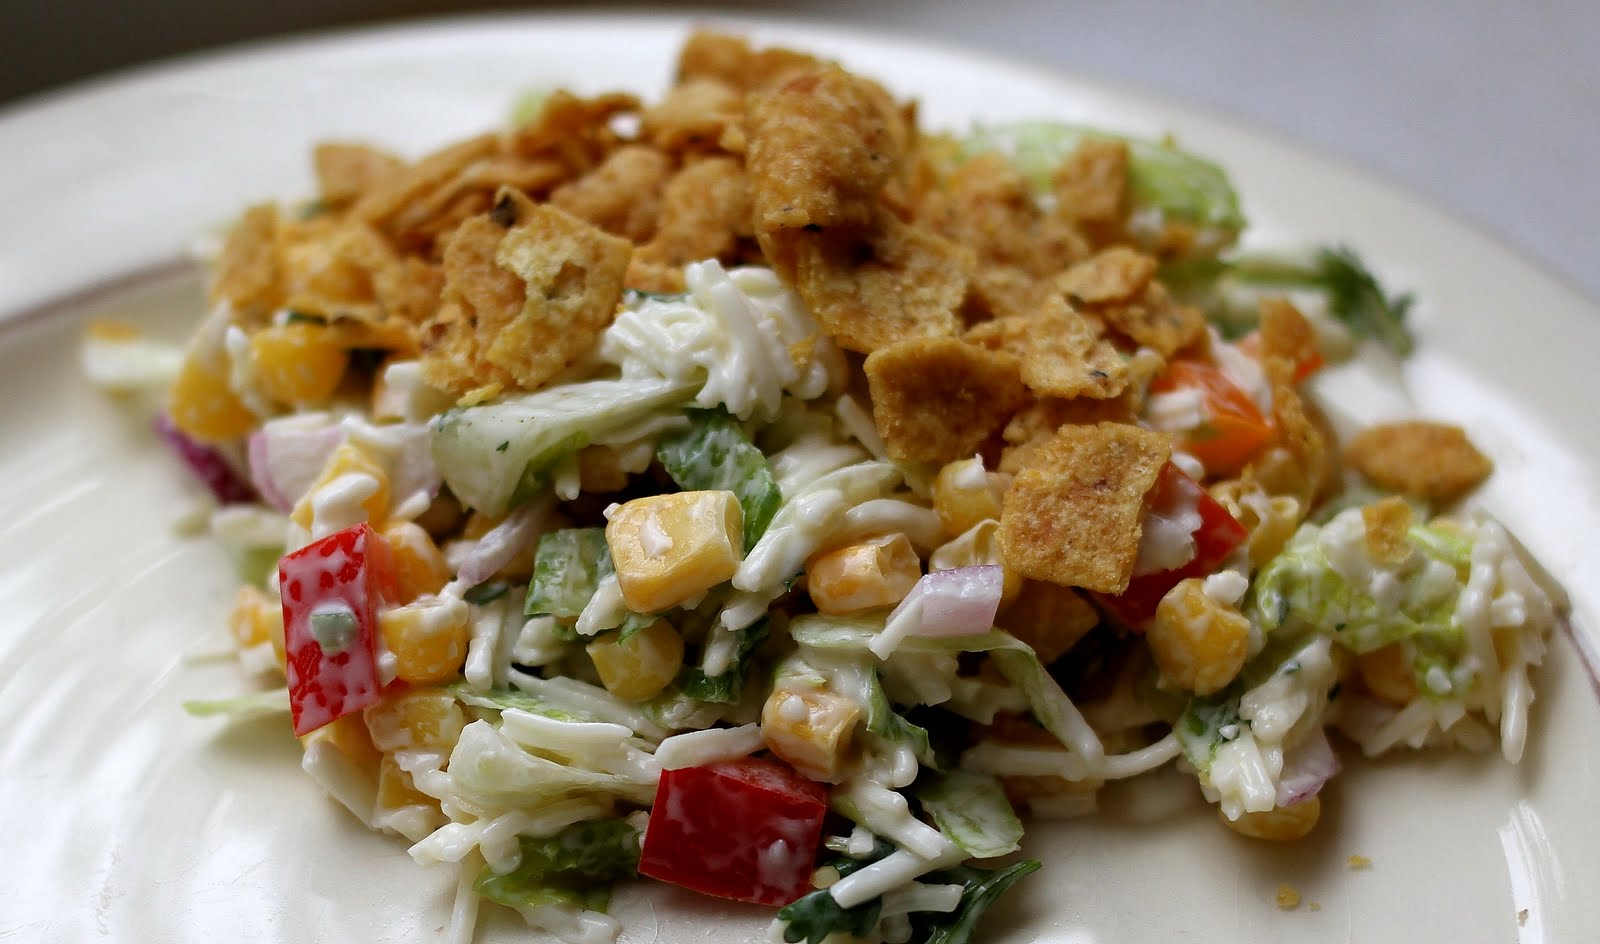 On My Menu: Cheesy Spicy Corn and Corn Chip Salad